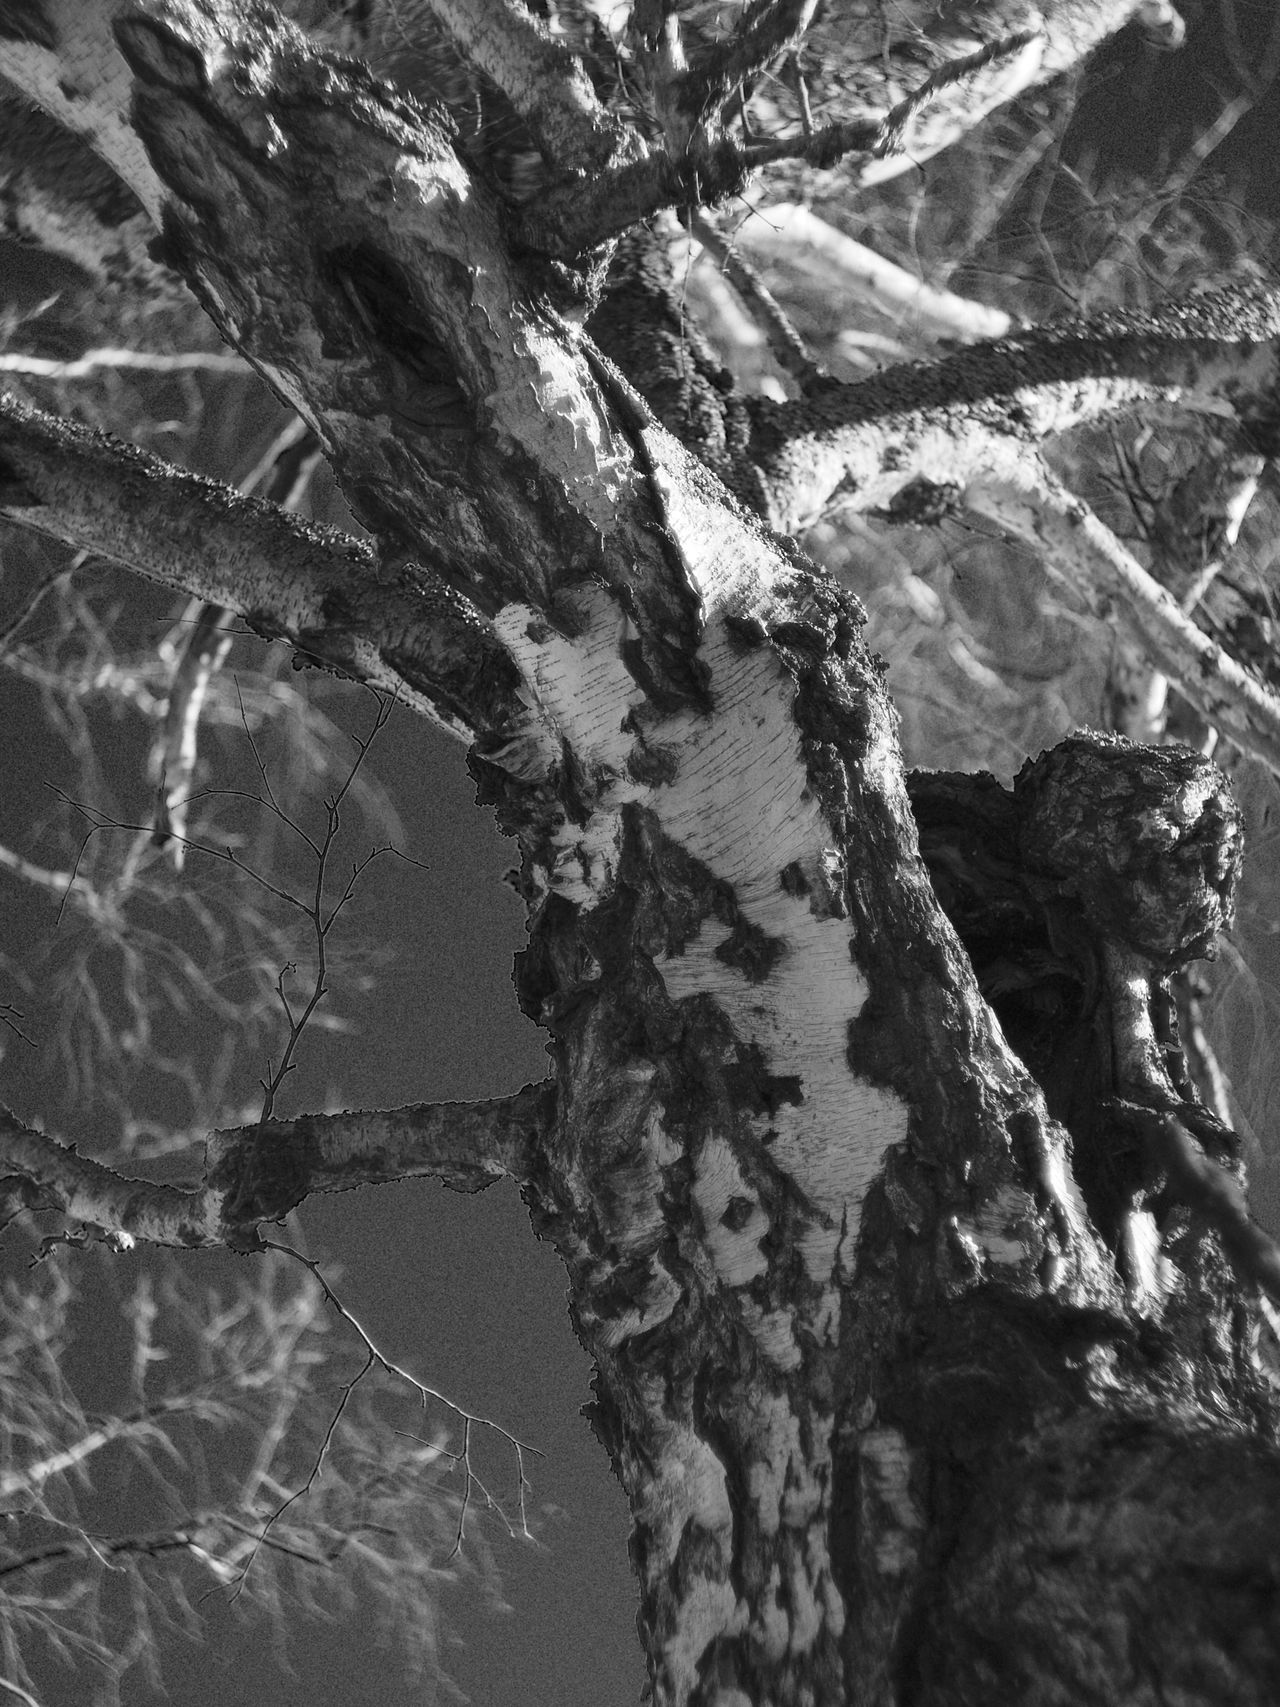 Foundation some new interesting trees today. It was freezing and I have a feeling I will spend some time in bed after this 😜 Tree Tree Trunk Nature No People Branch Day Outdoors Close-up Textured  Water Animal Themes Monochrome Photography Monochrome Black And White Black & White Blackandwhite Shallow Depth Of Field Nature Tree